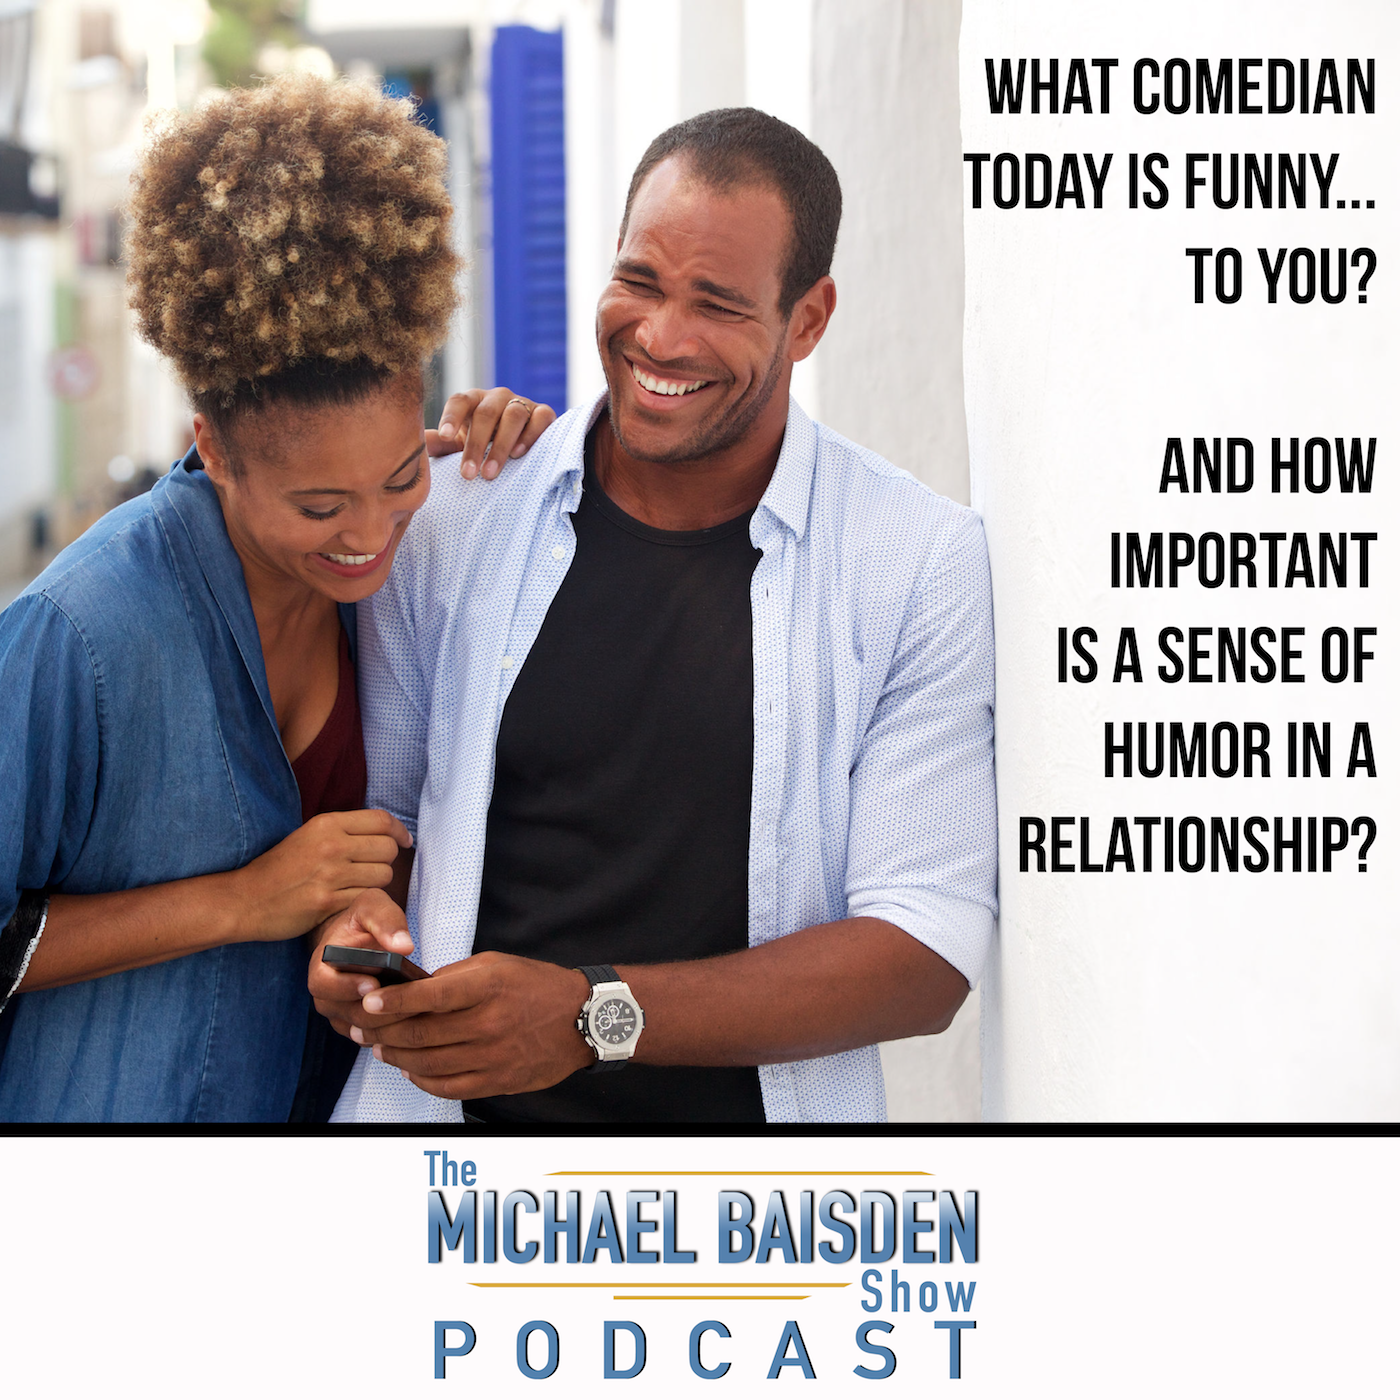 Why is a sense of humor important in a relationship